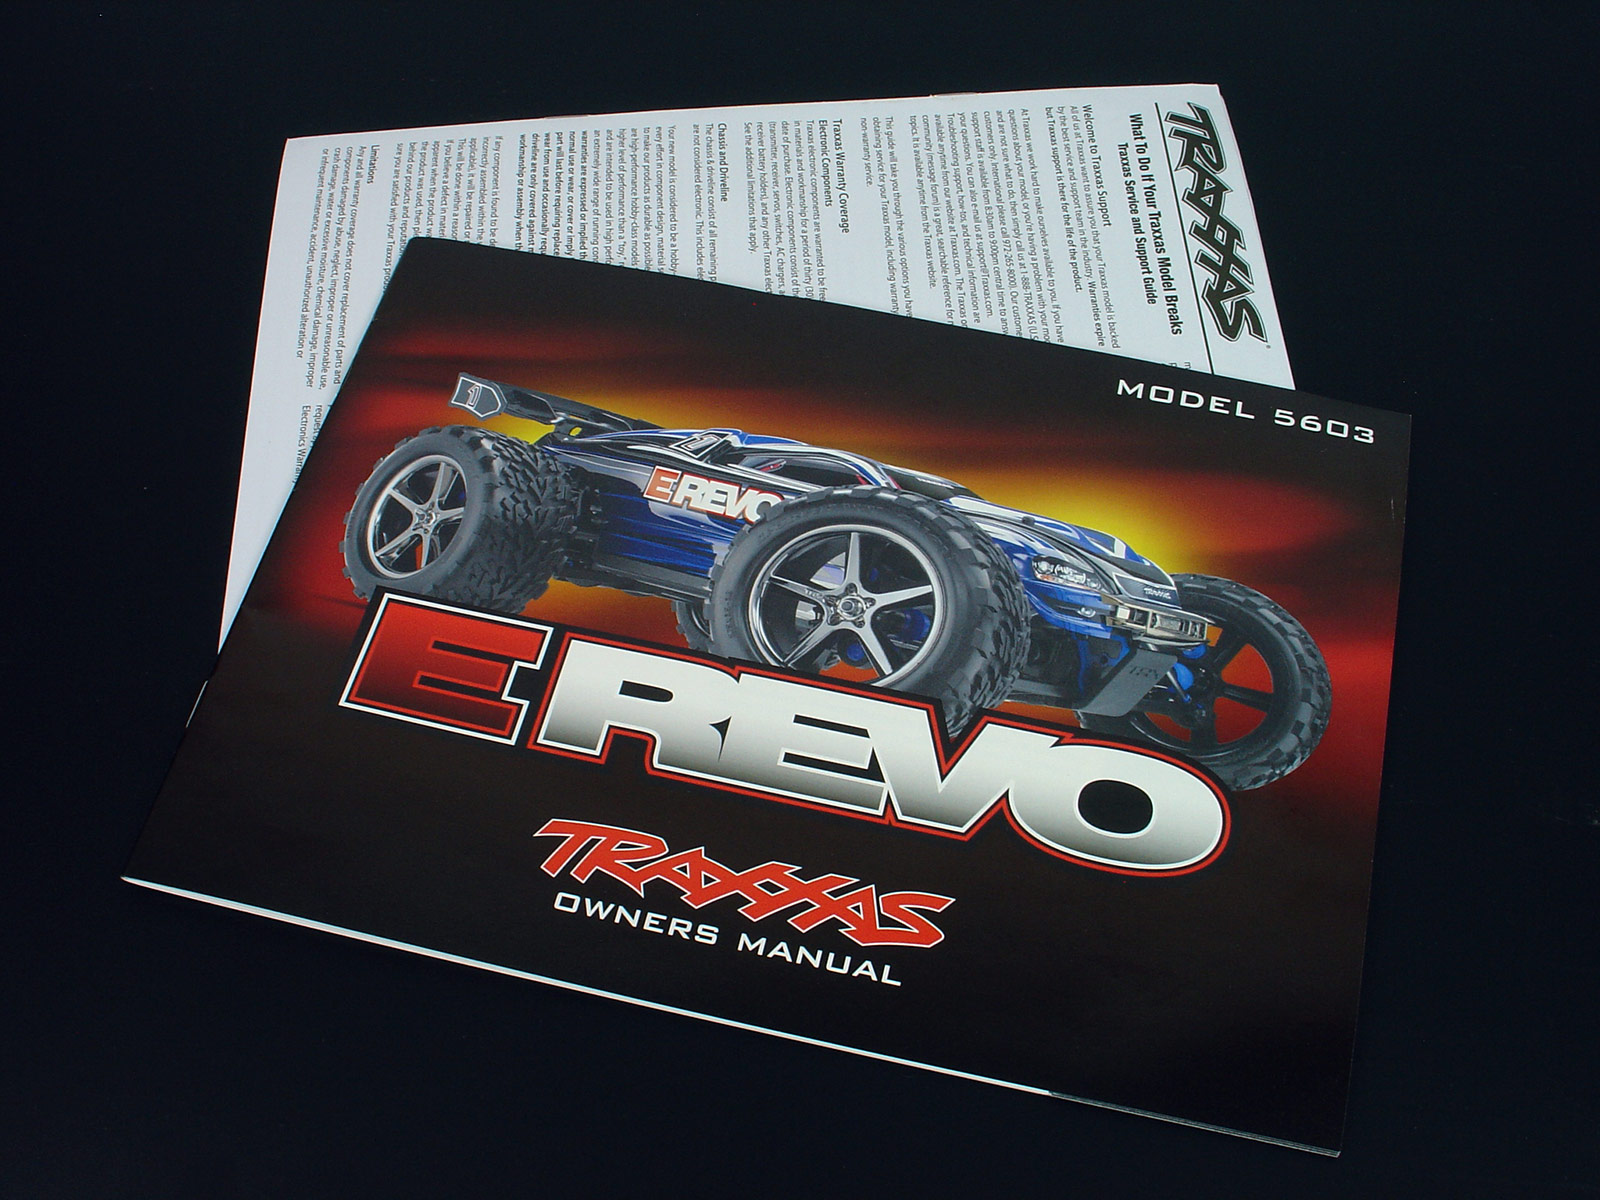 traxxas e revo owner s manual rh rcparts eu traxxas e maxx owners manual traxxas e maxx owners manual